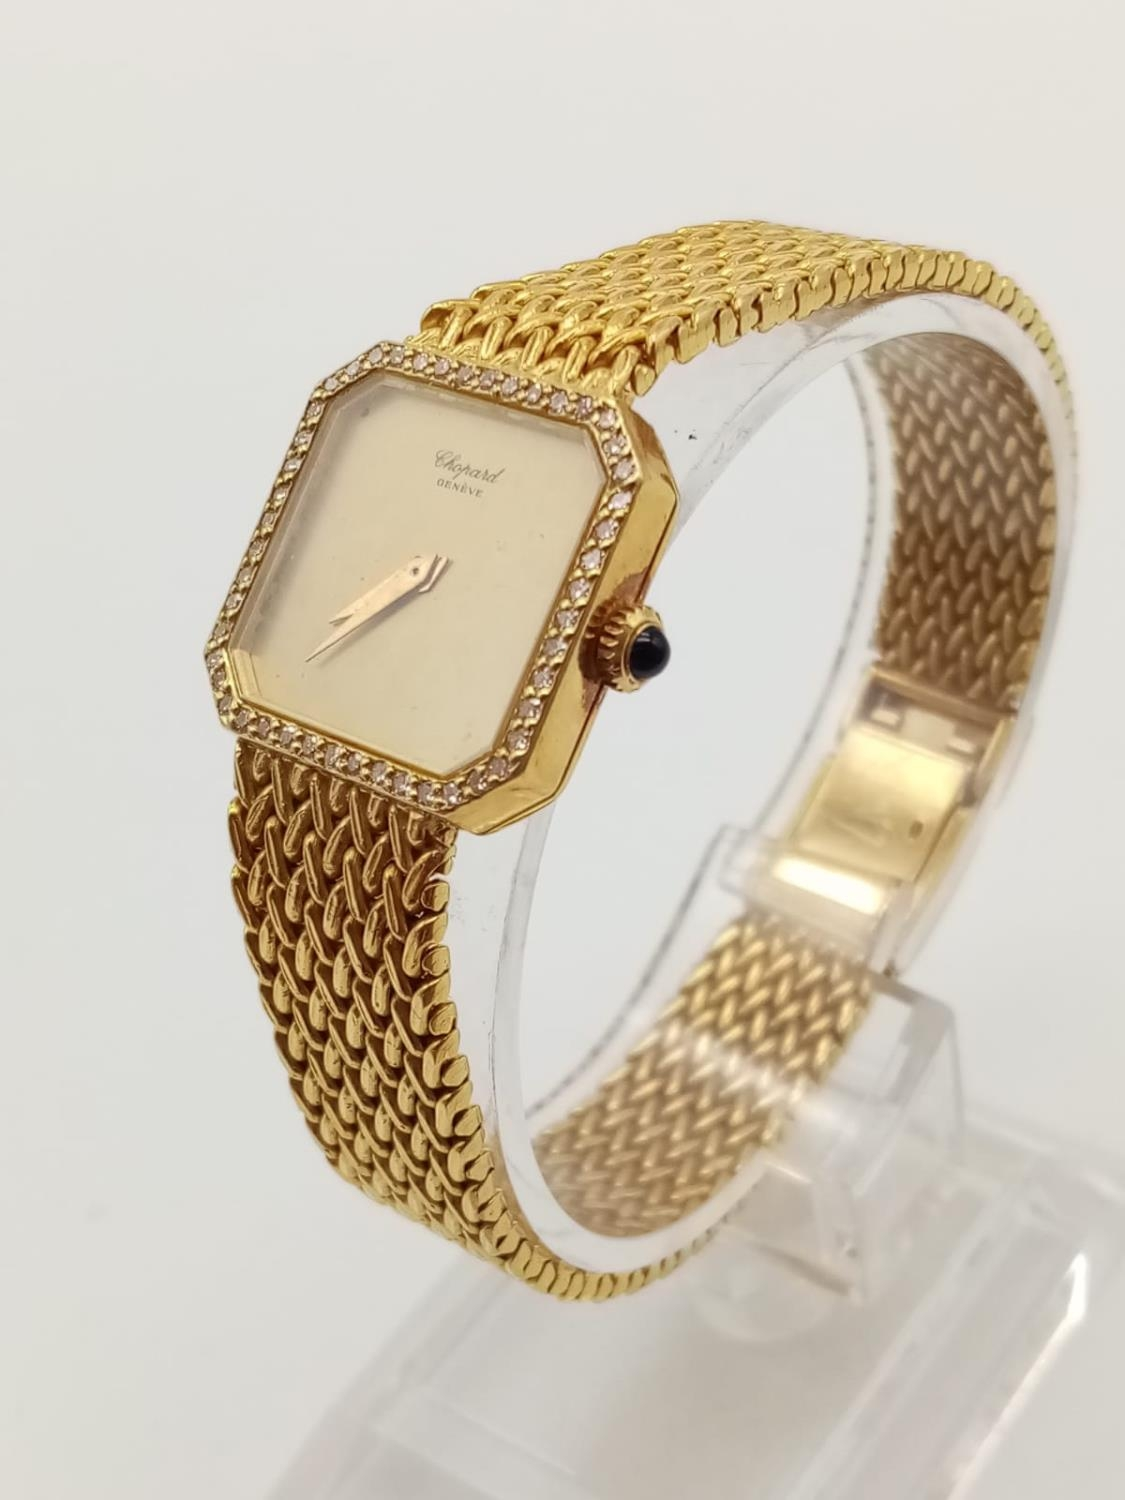 18K GOLD DRESS WATCH BY CHOPARD OF GENEVA WITH DIAMOND BEZEL AND SOLID GOLD STRAP. 20MM - Image 2 of 9